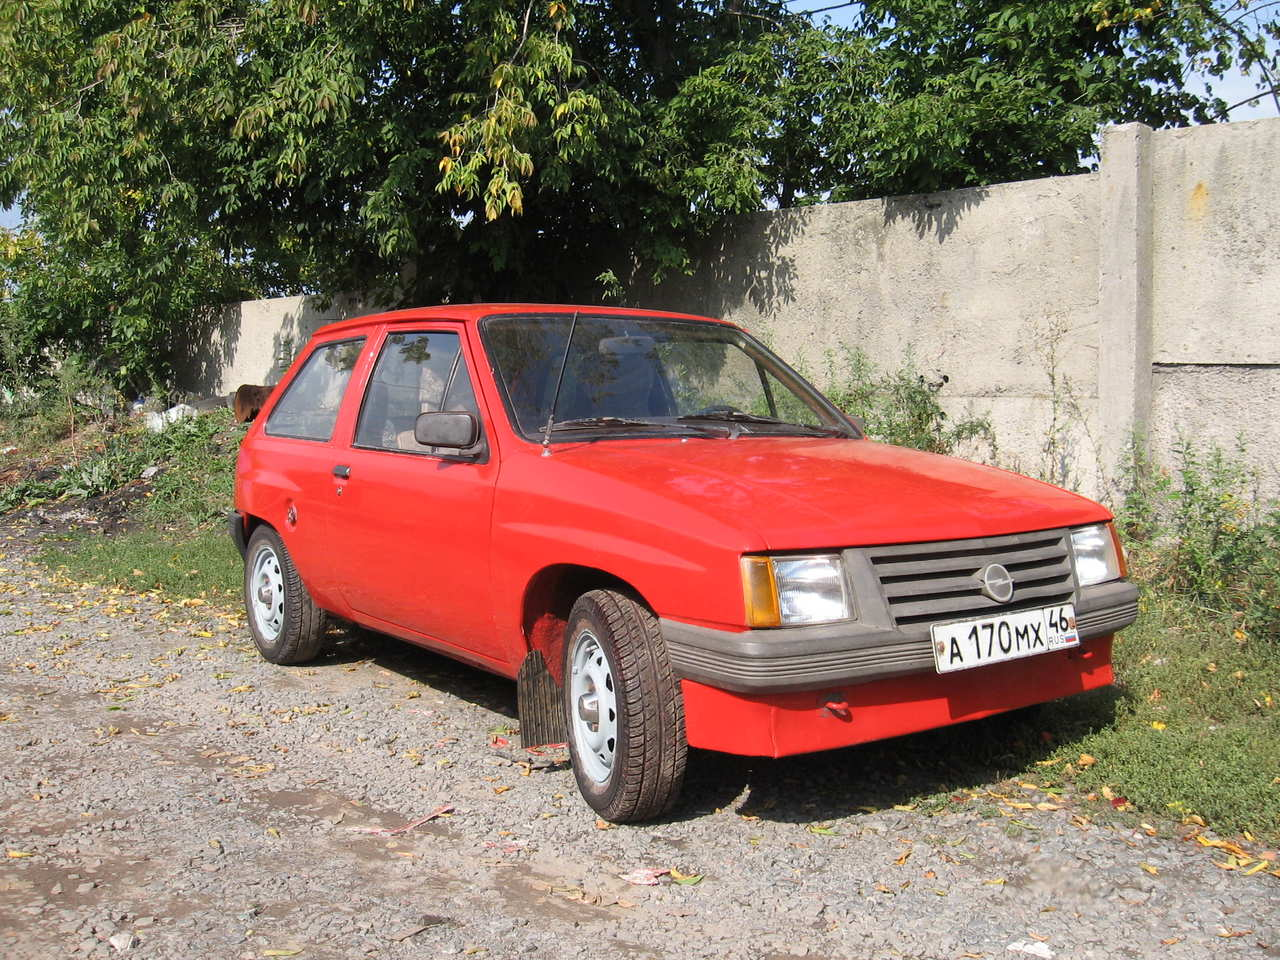 Used 1984 OPEL Corsa Photos